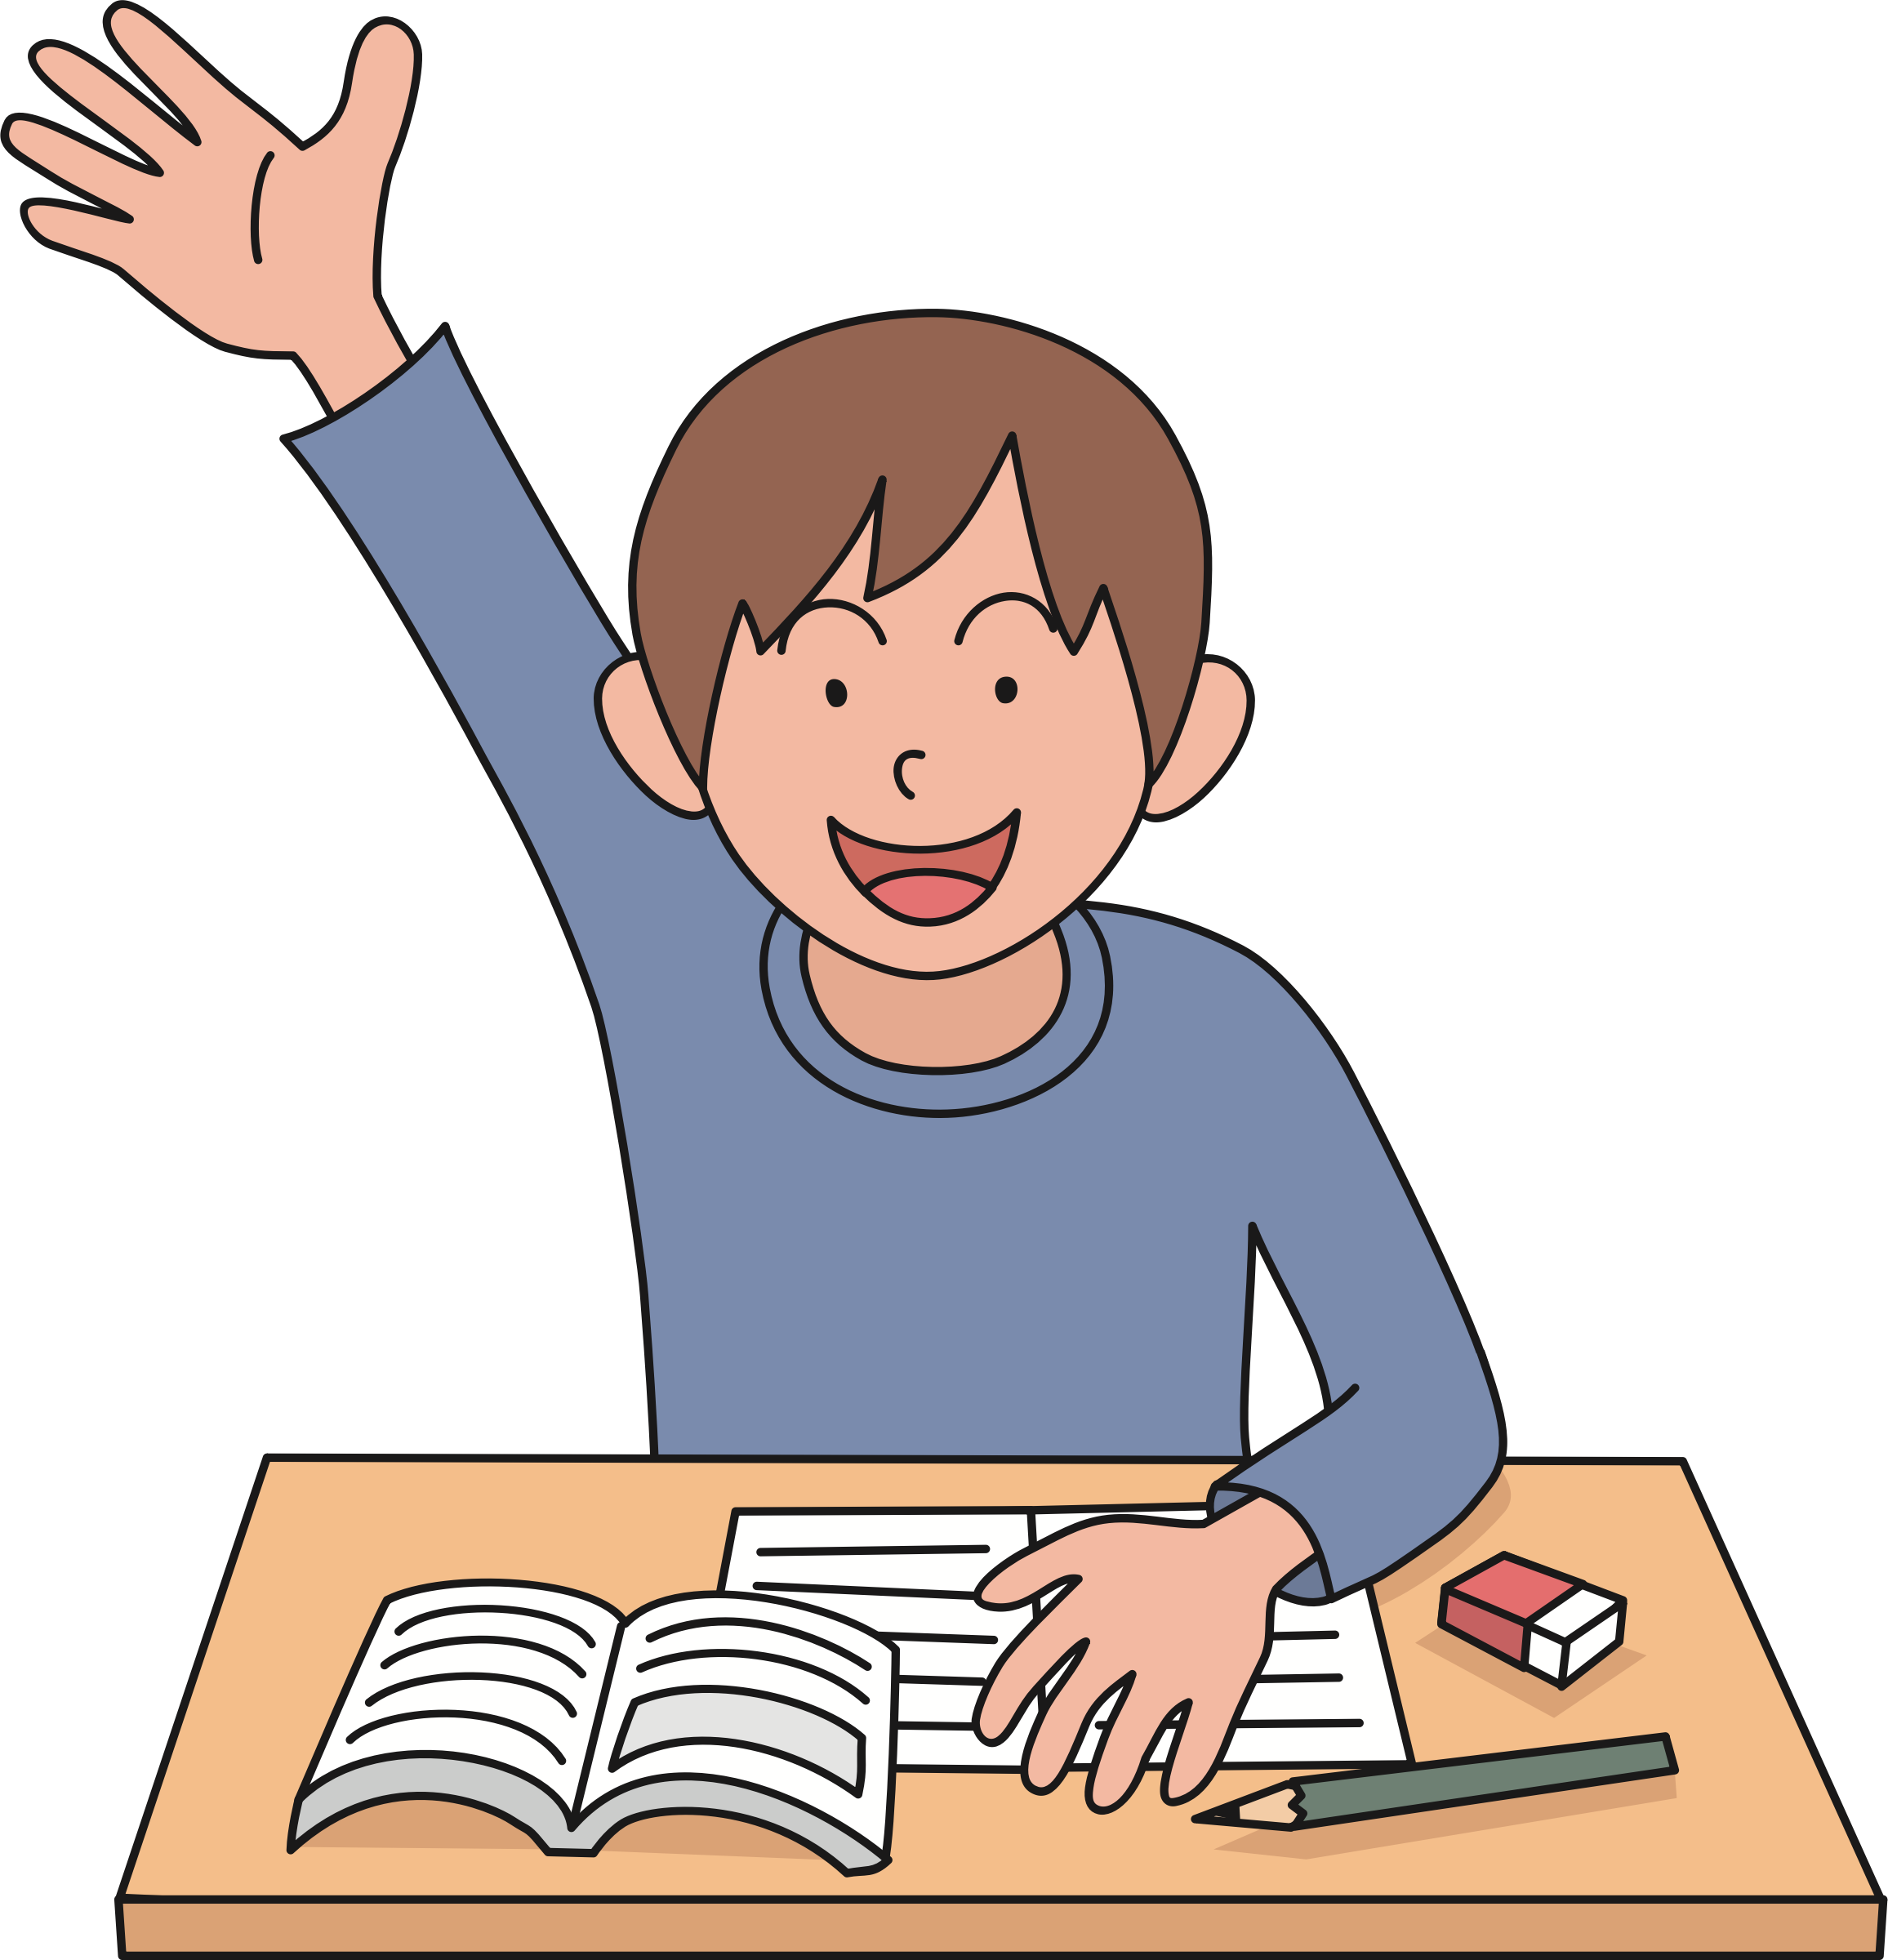 Kid raising hand clipart clipart images gallery for free download.